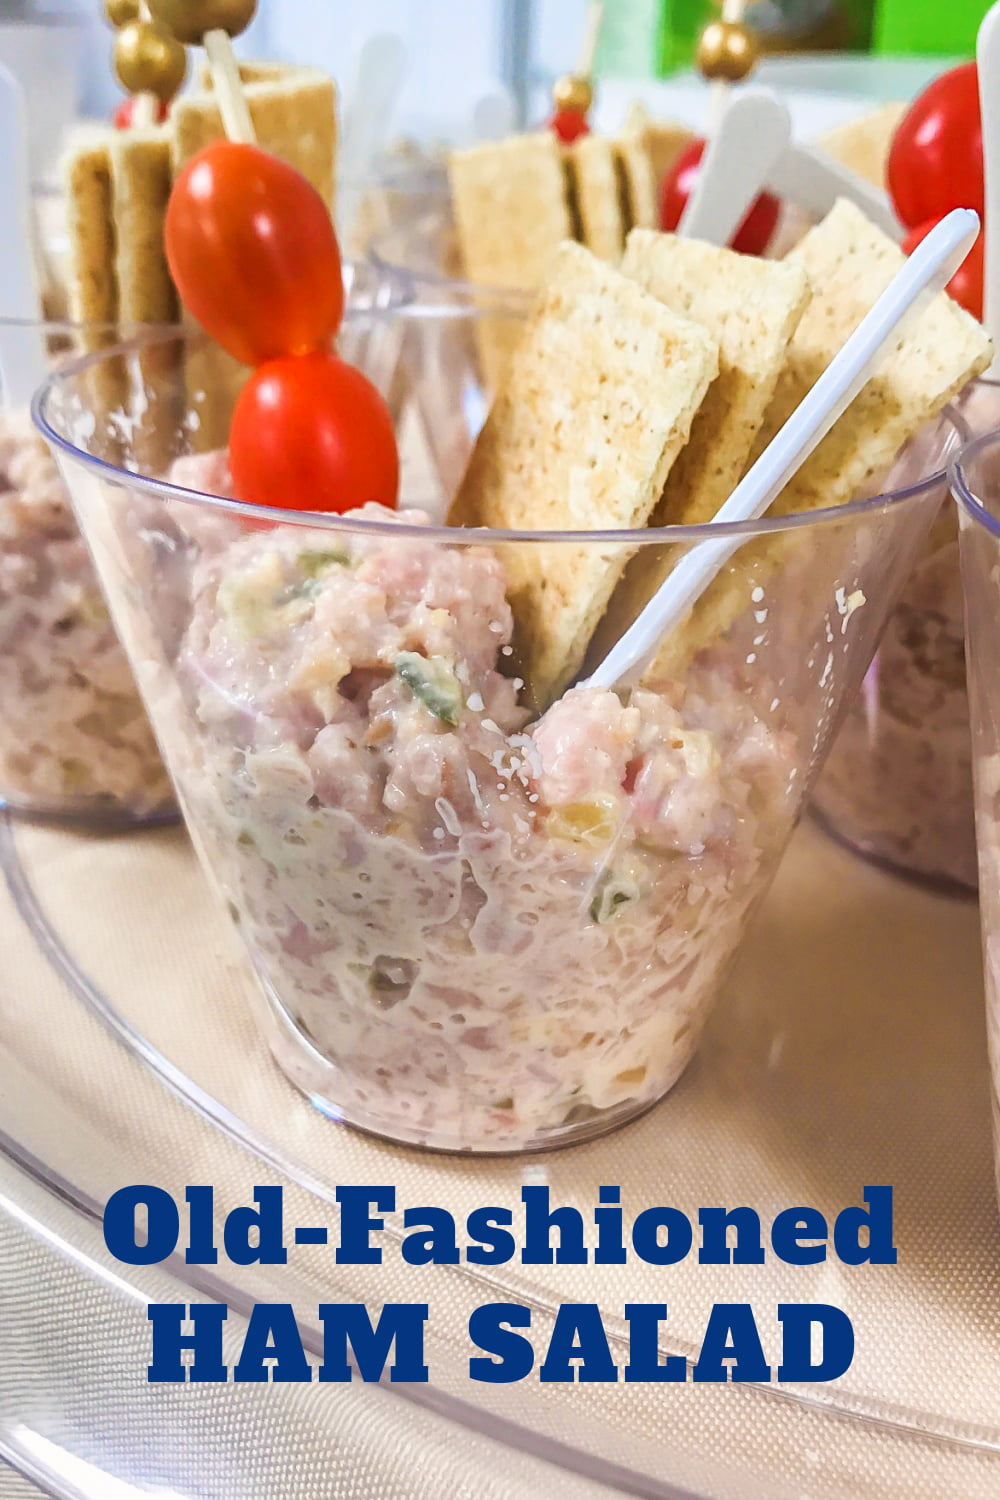 A cup of ham salad with grape tomatoes and crackers.